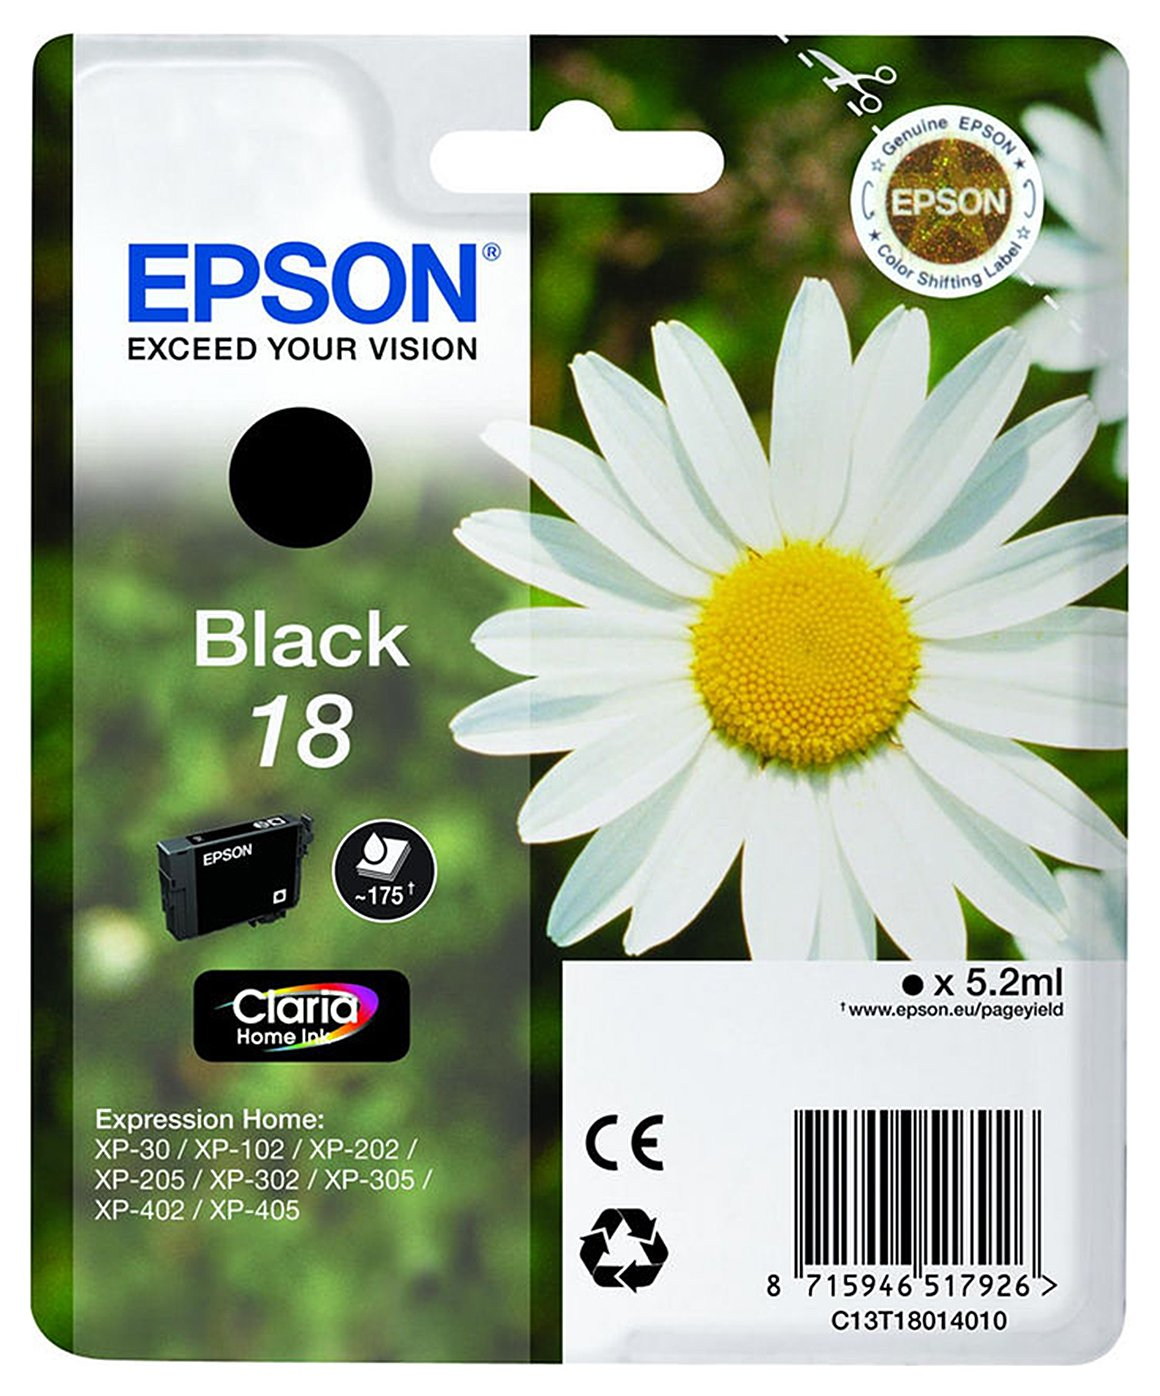 Epson Daisy T1801 Black Ink Cartridge from Epson